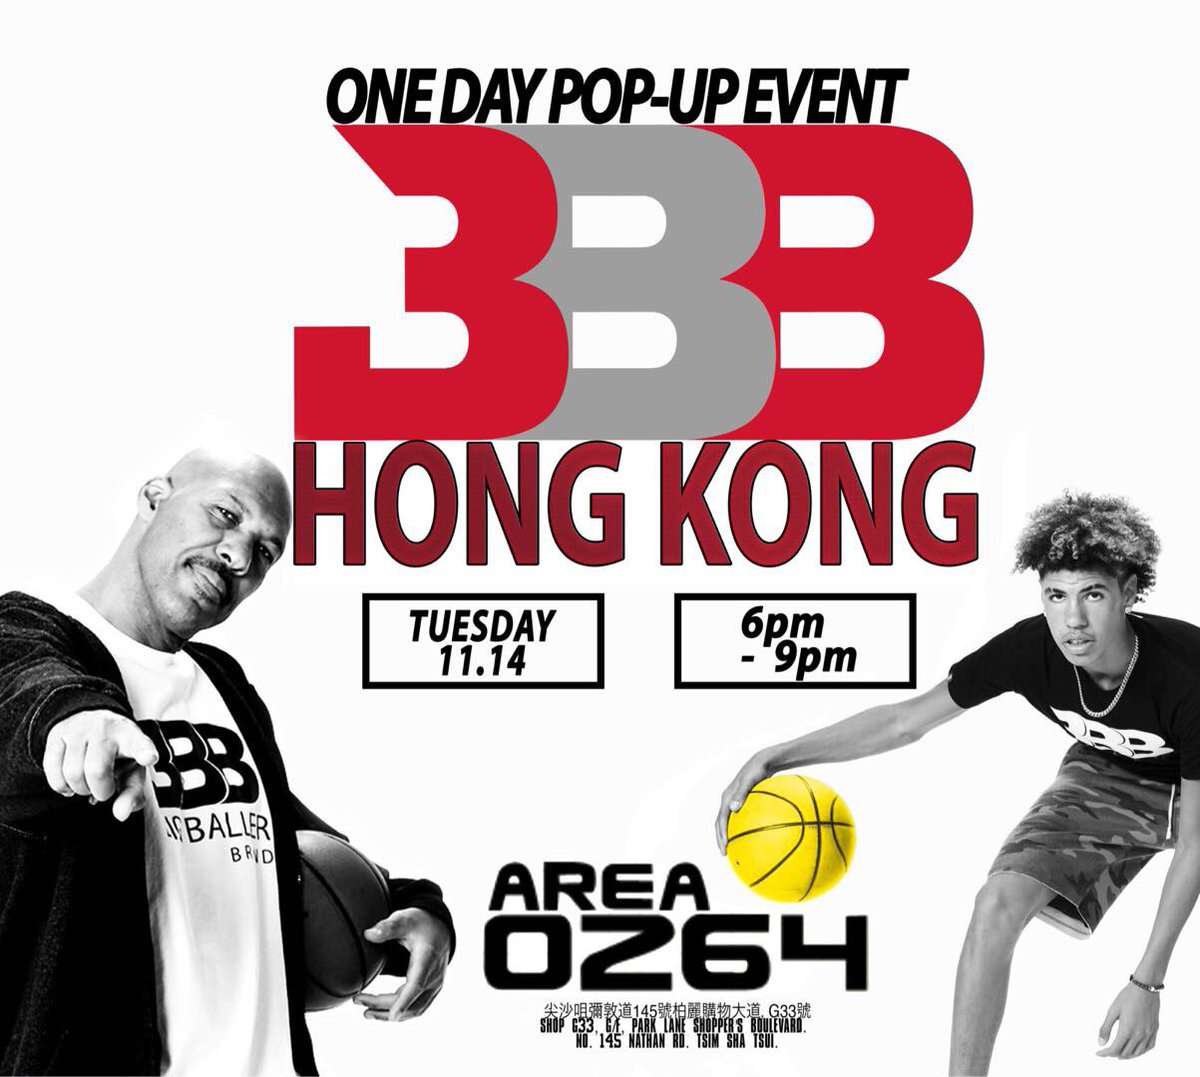 bbb hong kong pop up